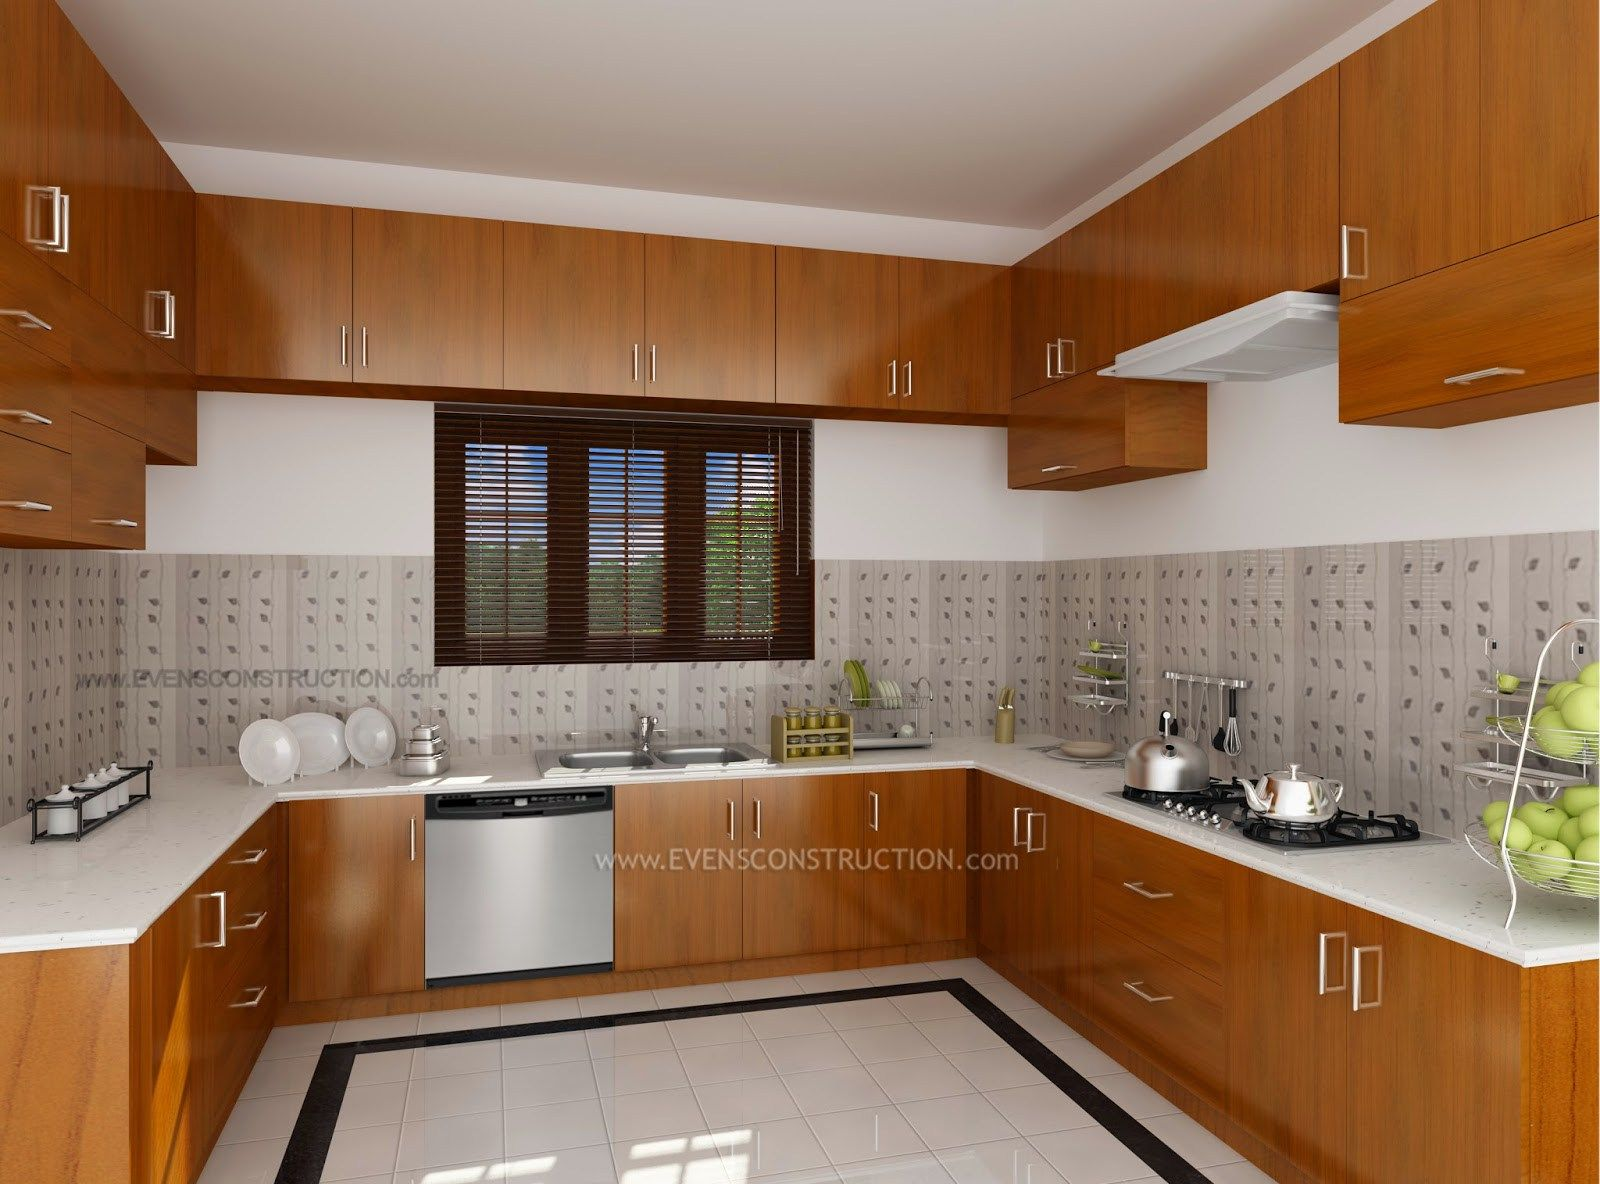 Design interior kitchen home kerala modern house kitchen for Modern kitchen designs in kerala